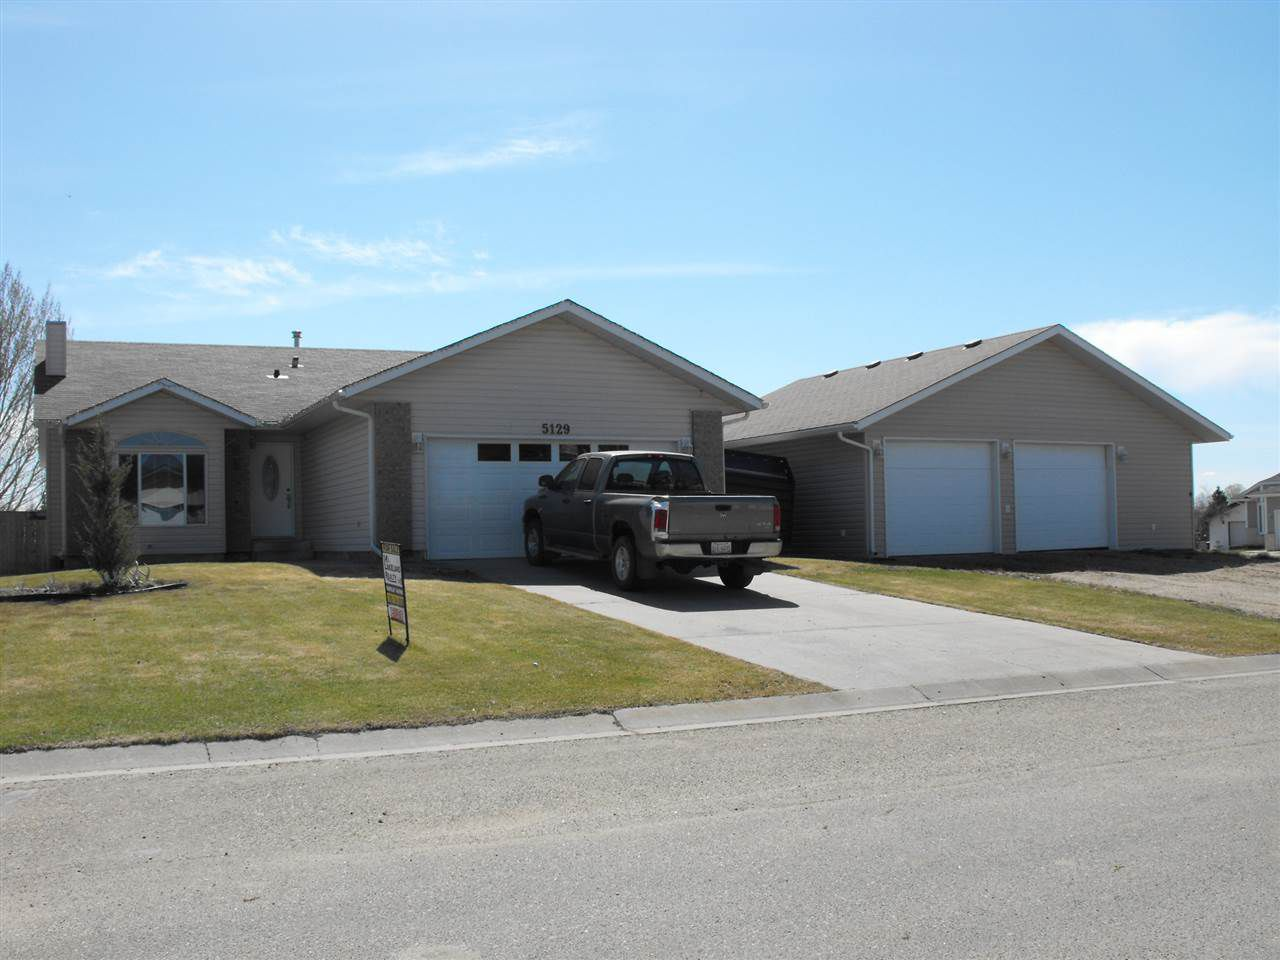 Main Photo: 5129 59 Avenue: Elk Point House for sale : MLS®# E4101456